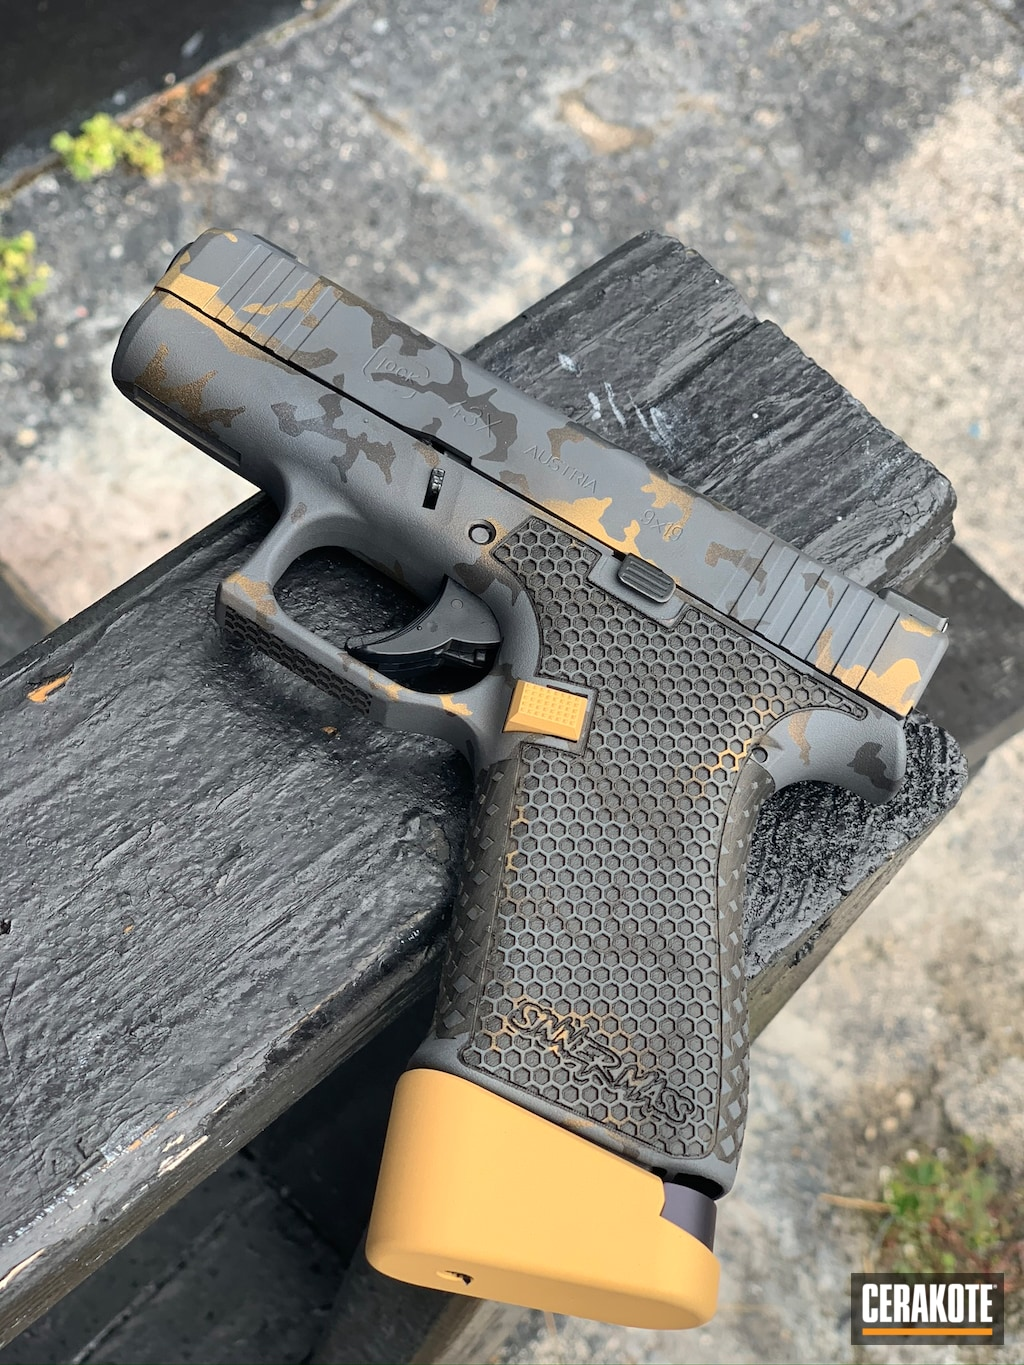 Stippled Glock 43X done in Sniper Grey, Graphite Black and ...